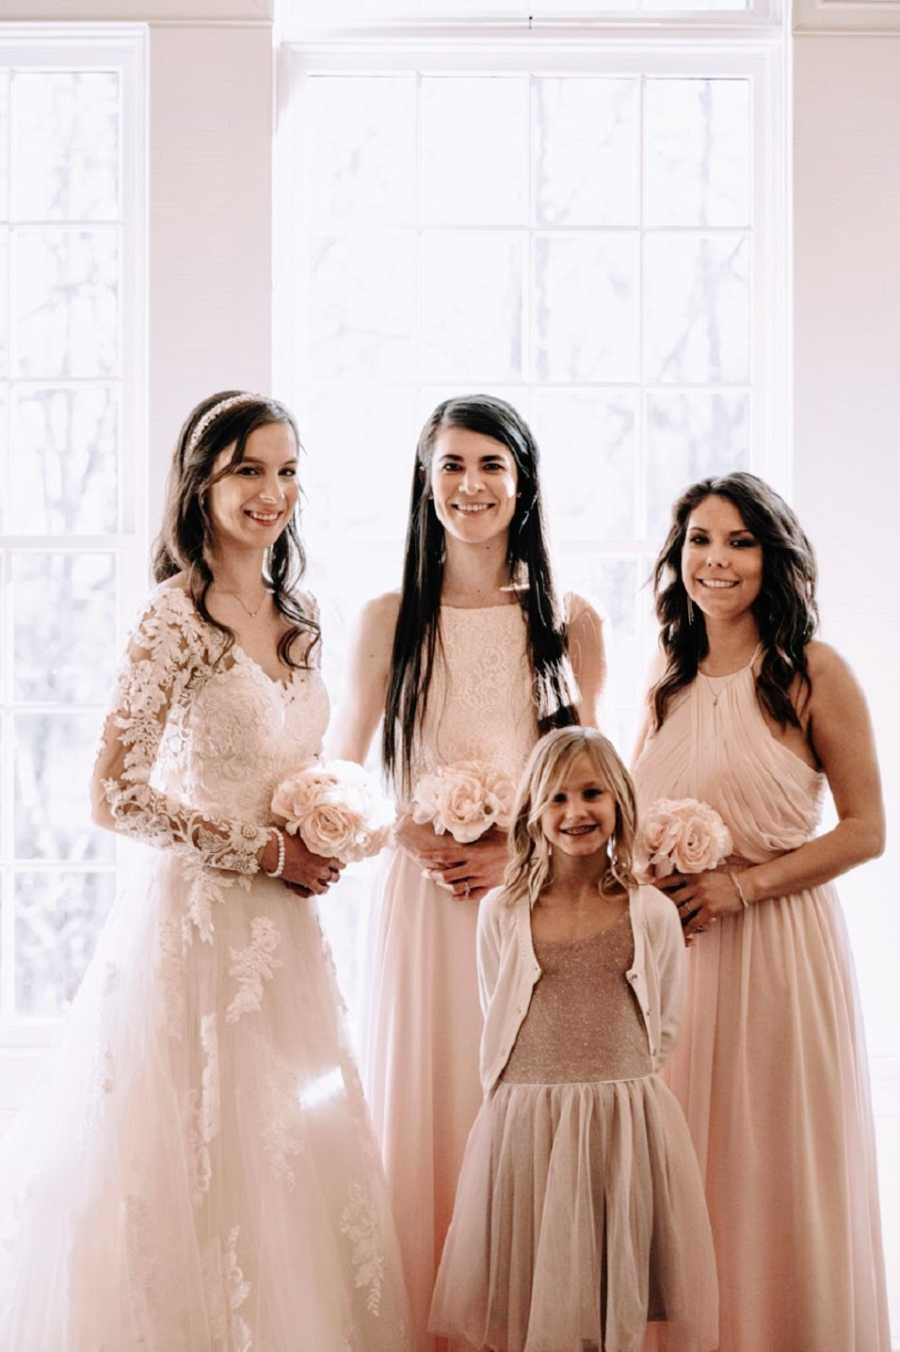 A bride and her sisters stand together wearing dresses